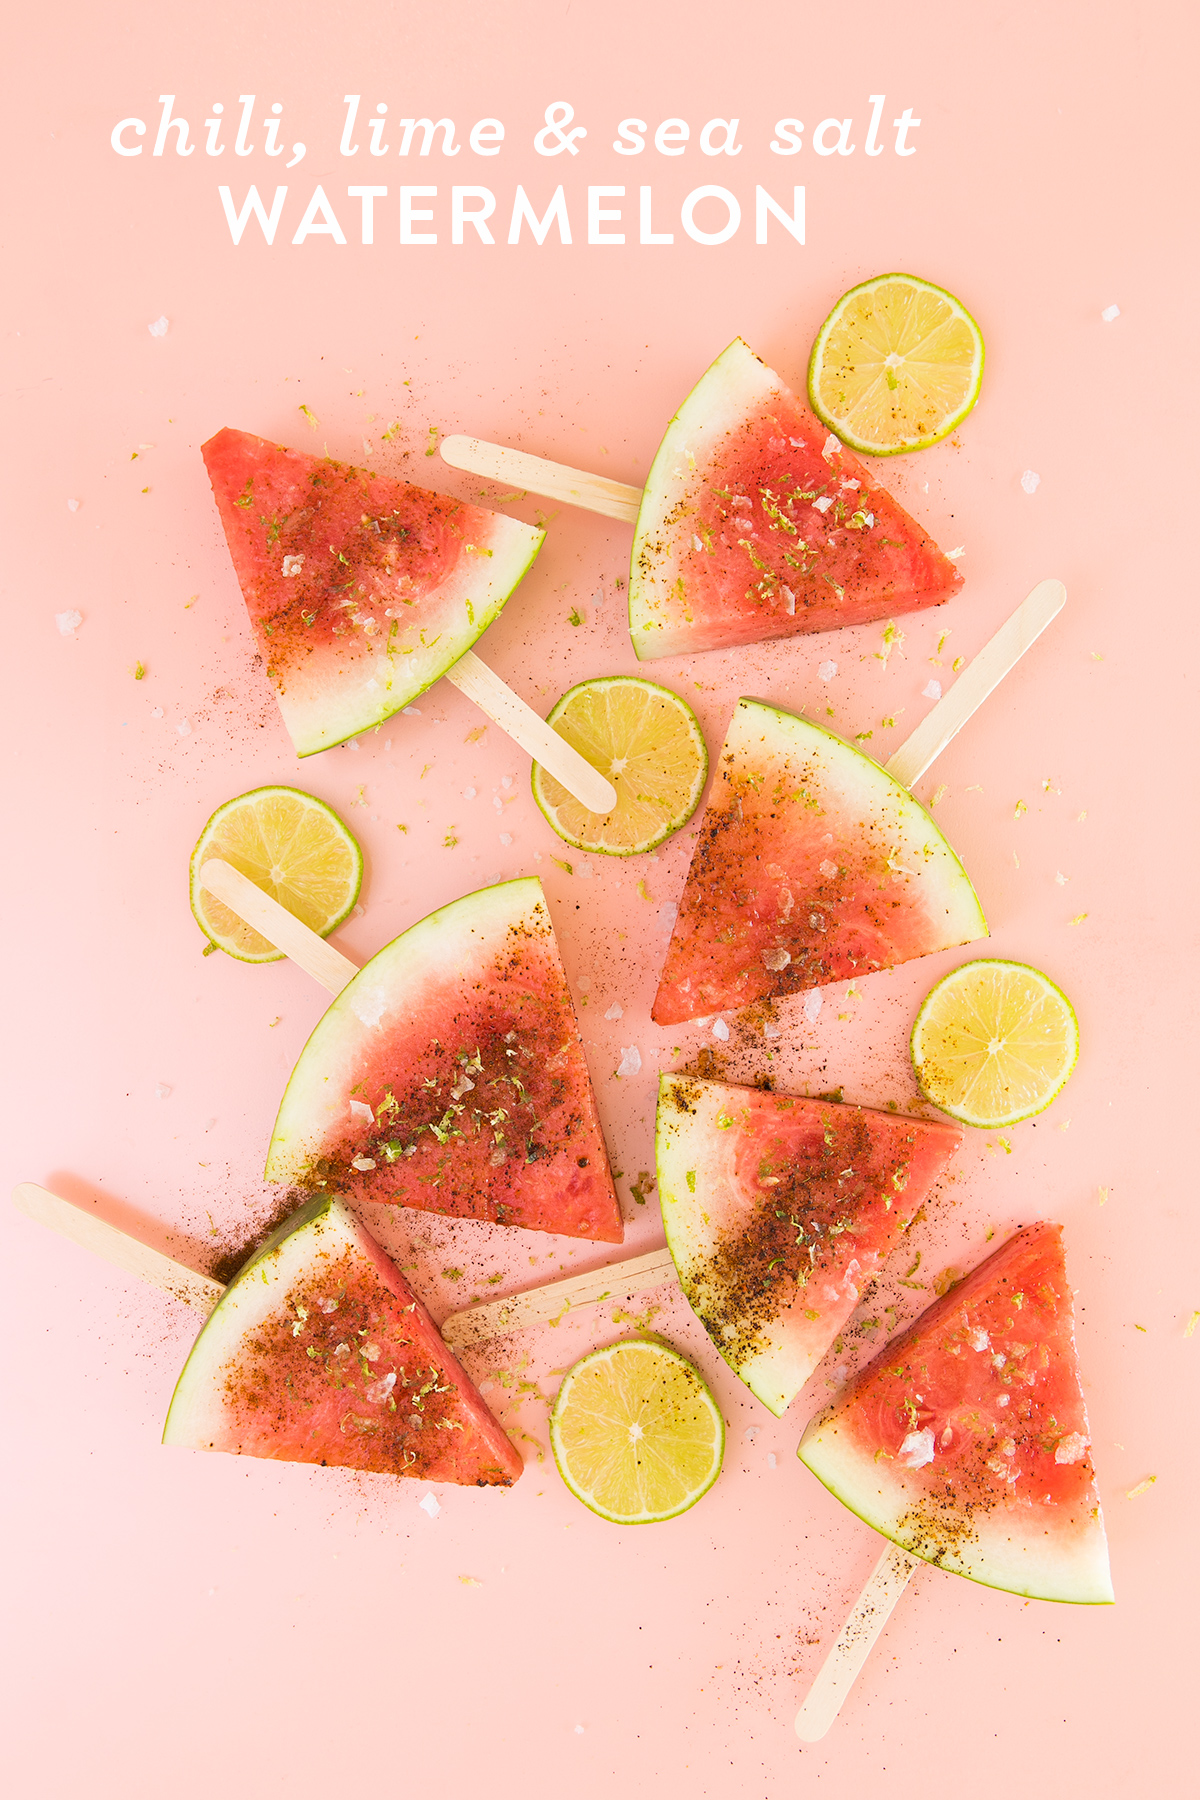 This super simple watermelon recipe with chili powder, lime and sea salt is the perfect summer snack. Serve it on popsicle sticks for an easy to eat and healthy treat.